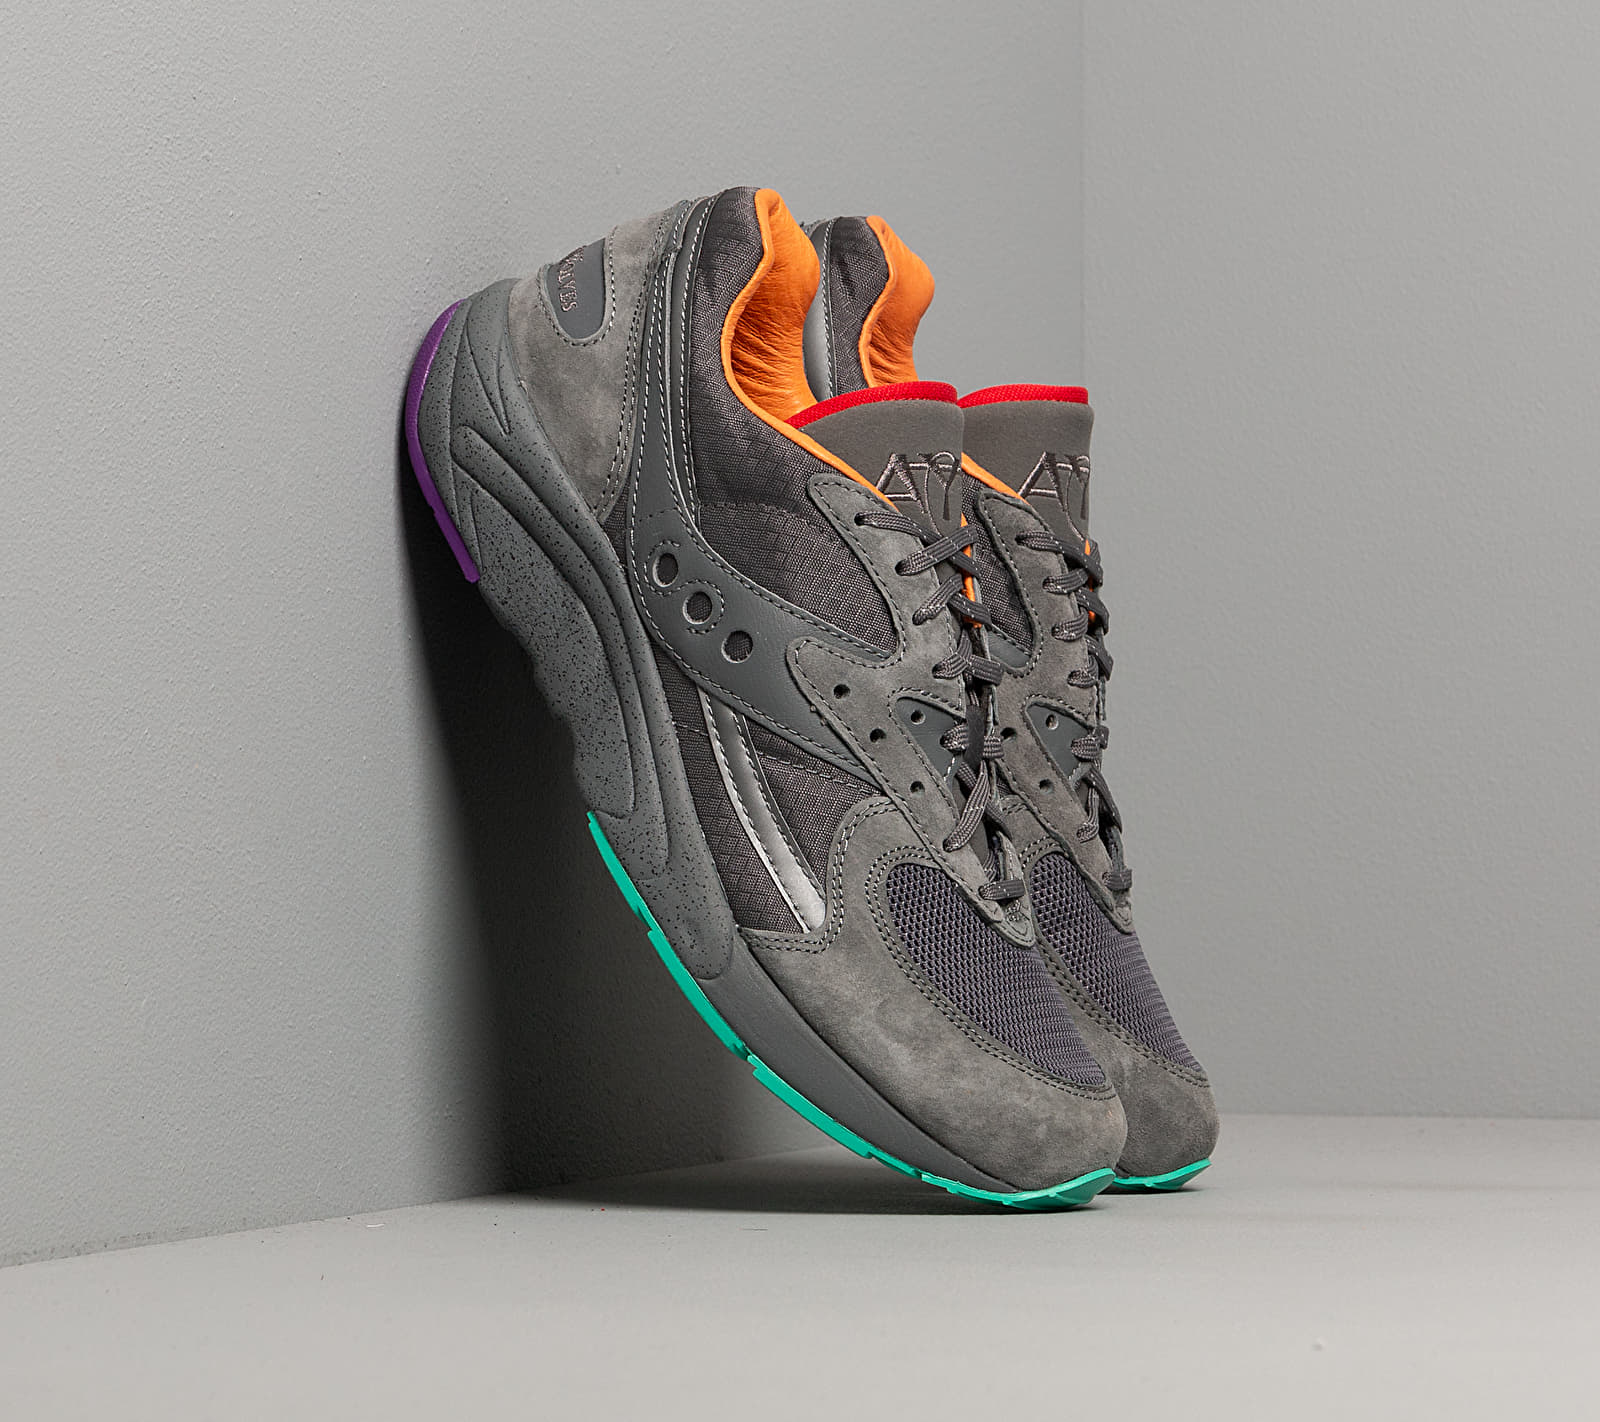 Saucony x Raised By Wolves Aya Grey/ Multi